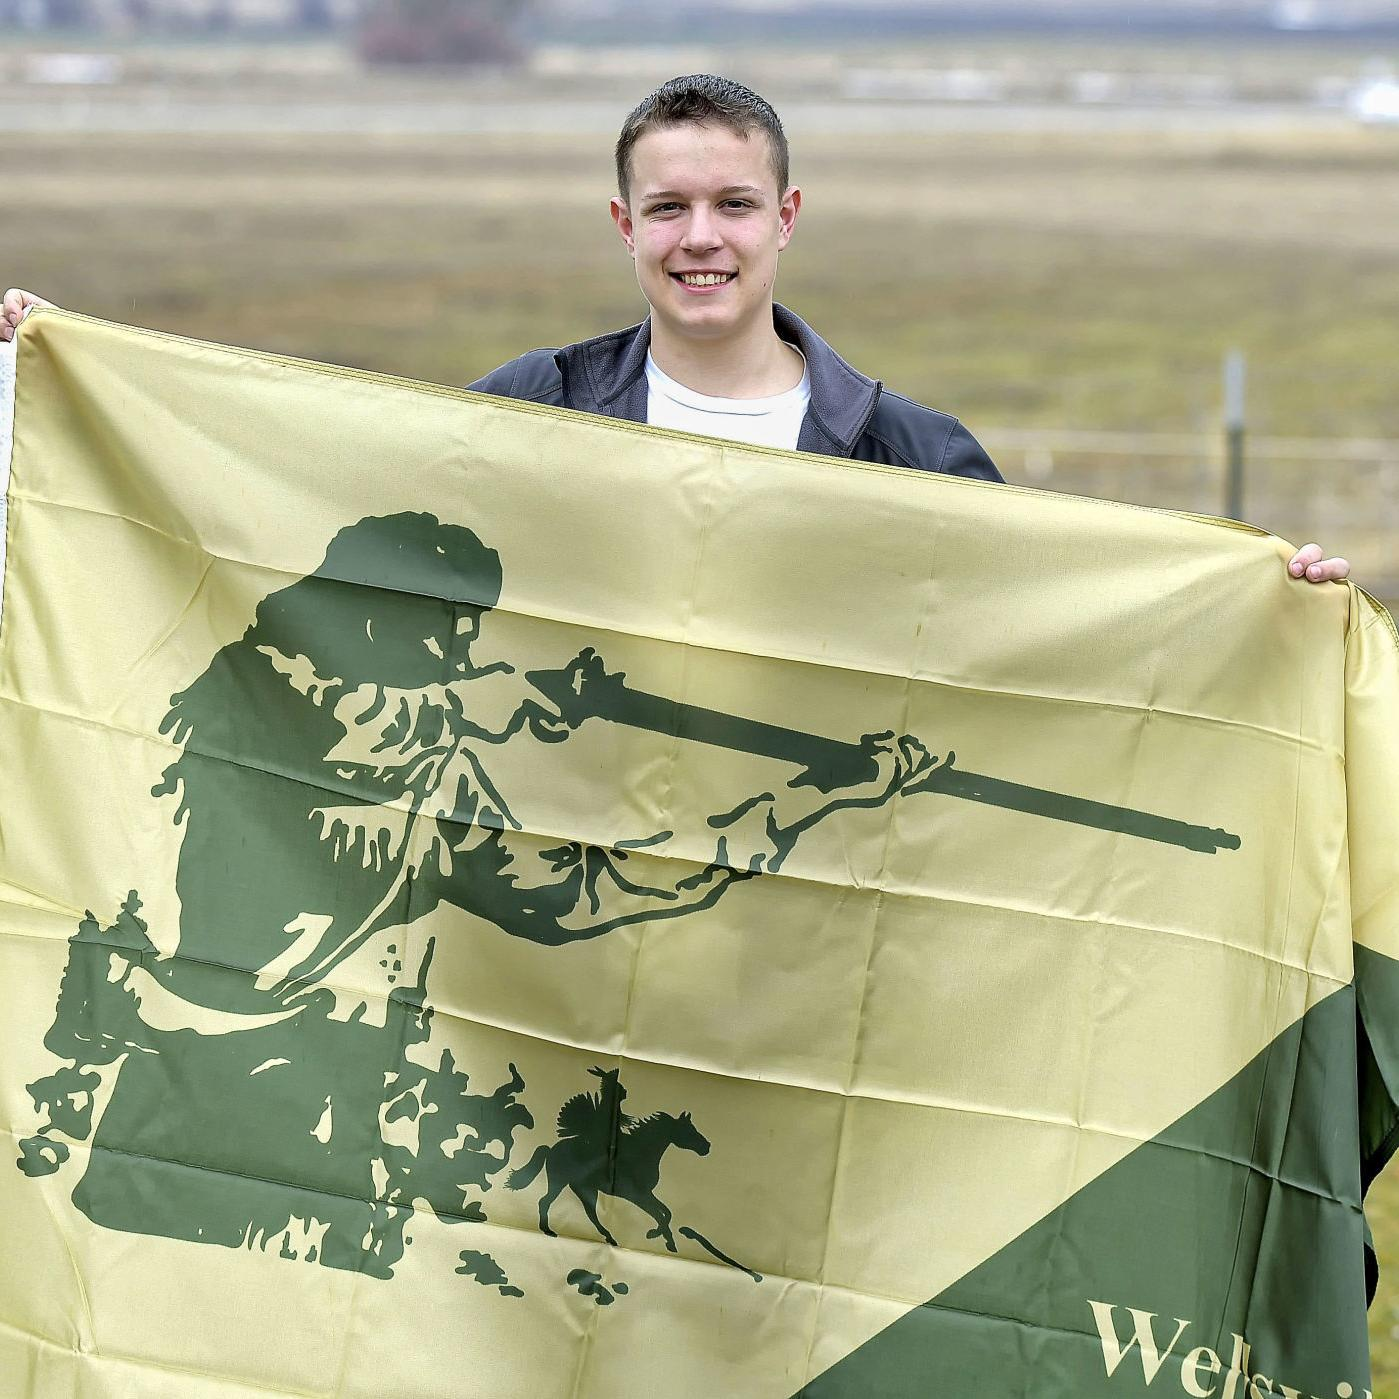 Bye-bye Bridger? Scout hopes to earn Eagle by redesigning Wellsville city flag